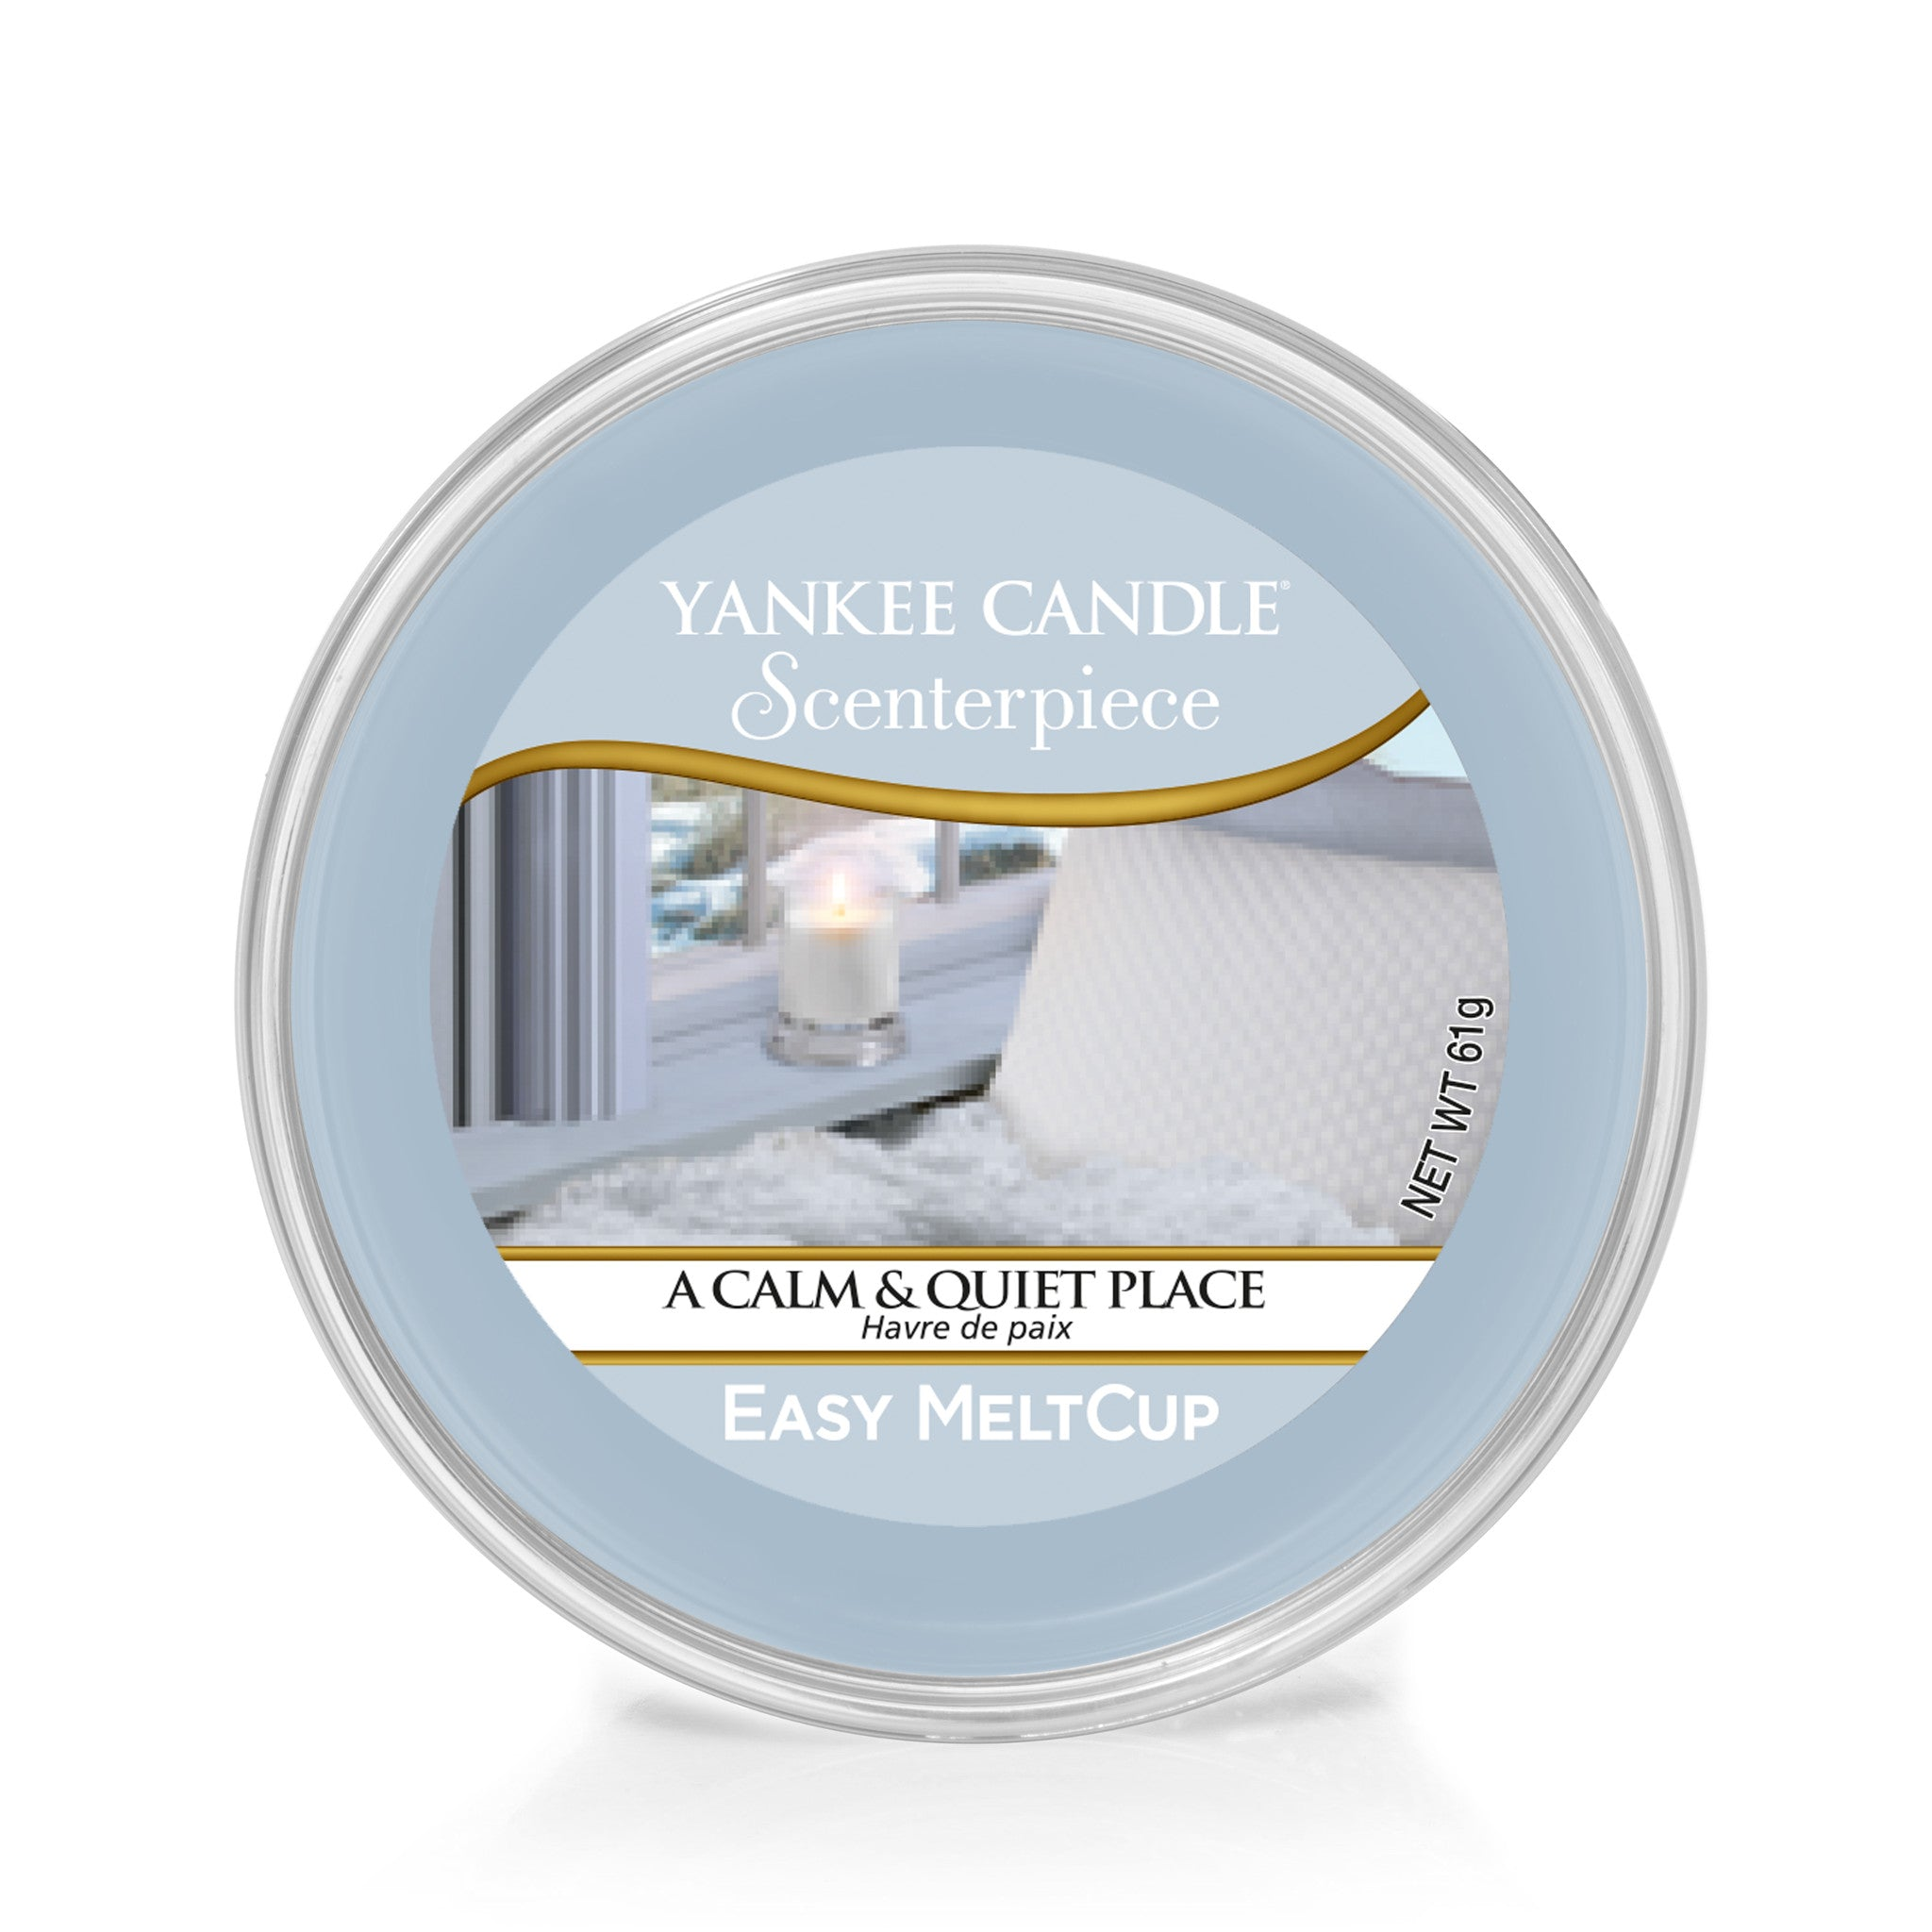 A CALM & QUIET PLACE -Yankee Candle- Easy MeltCup